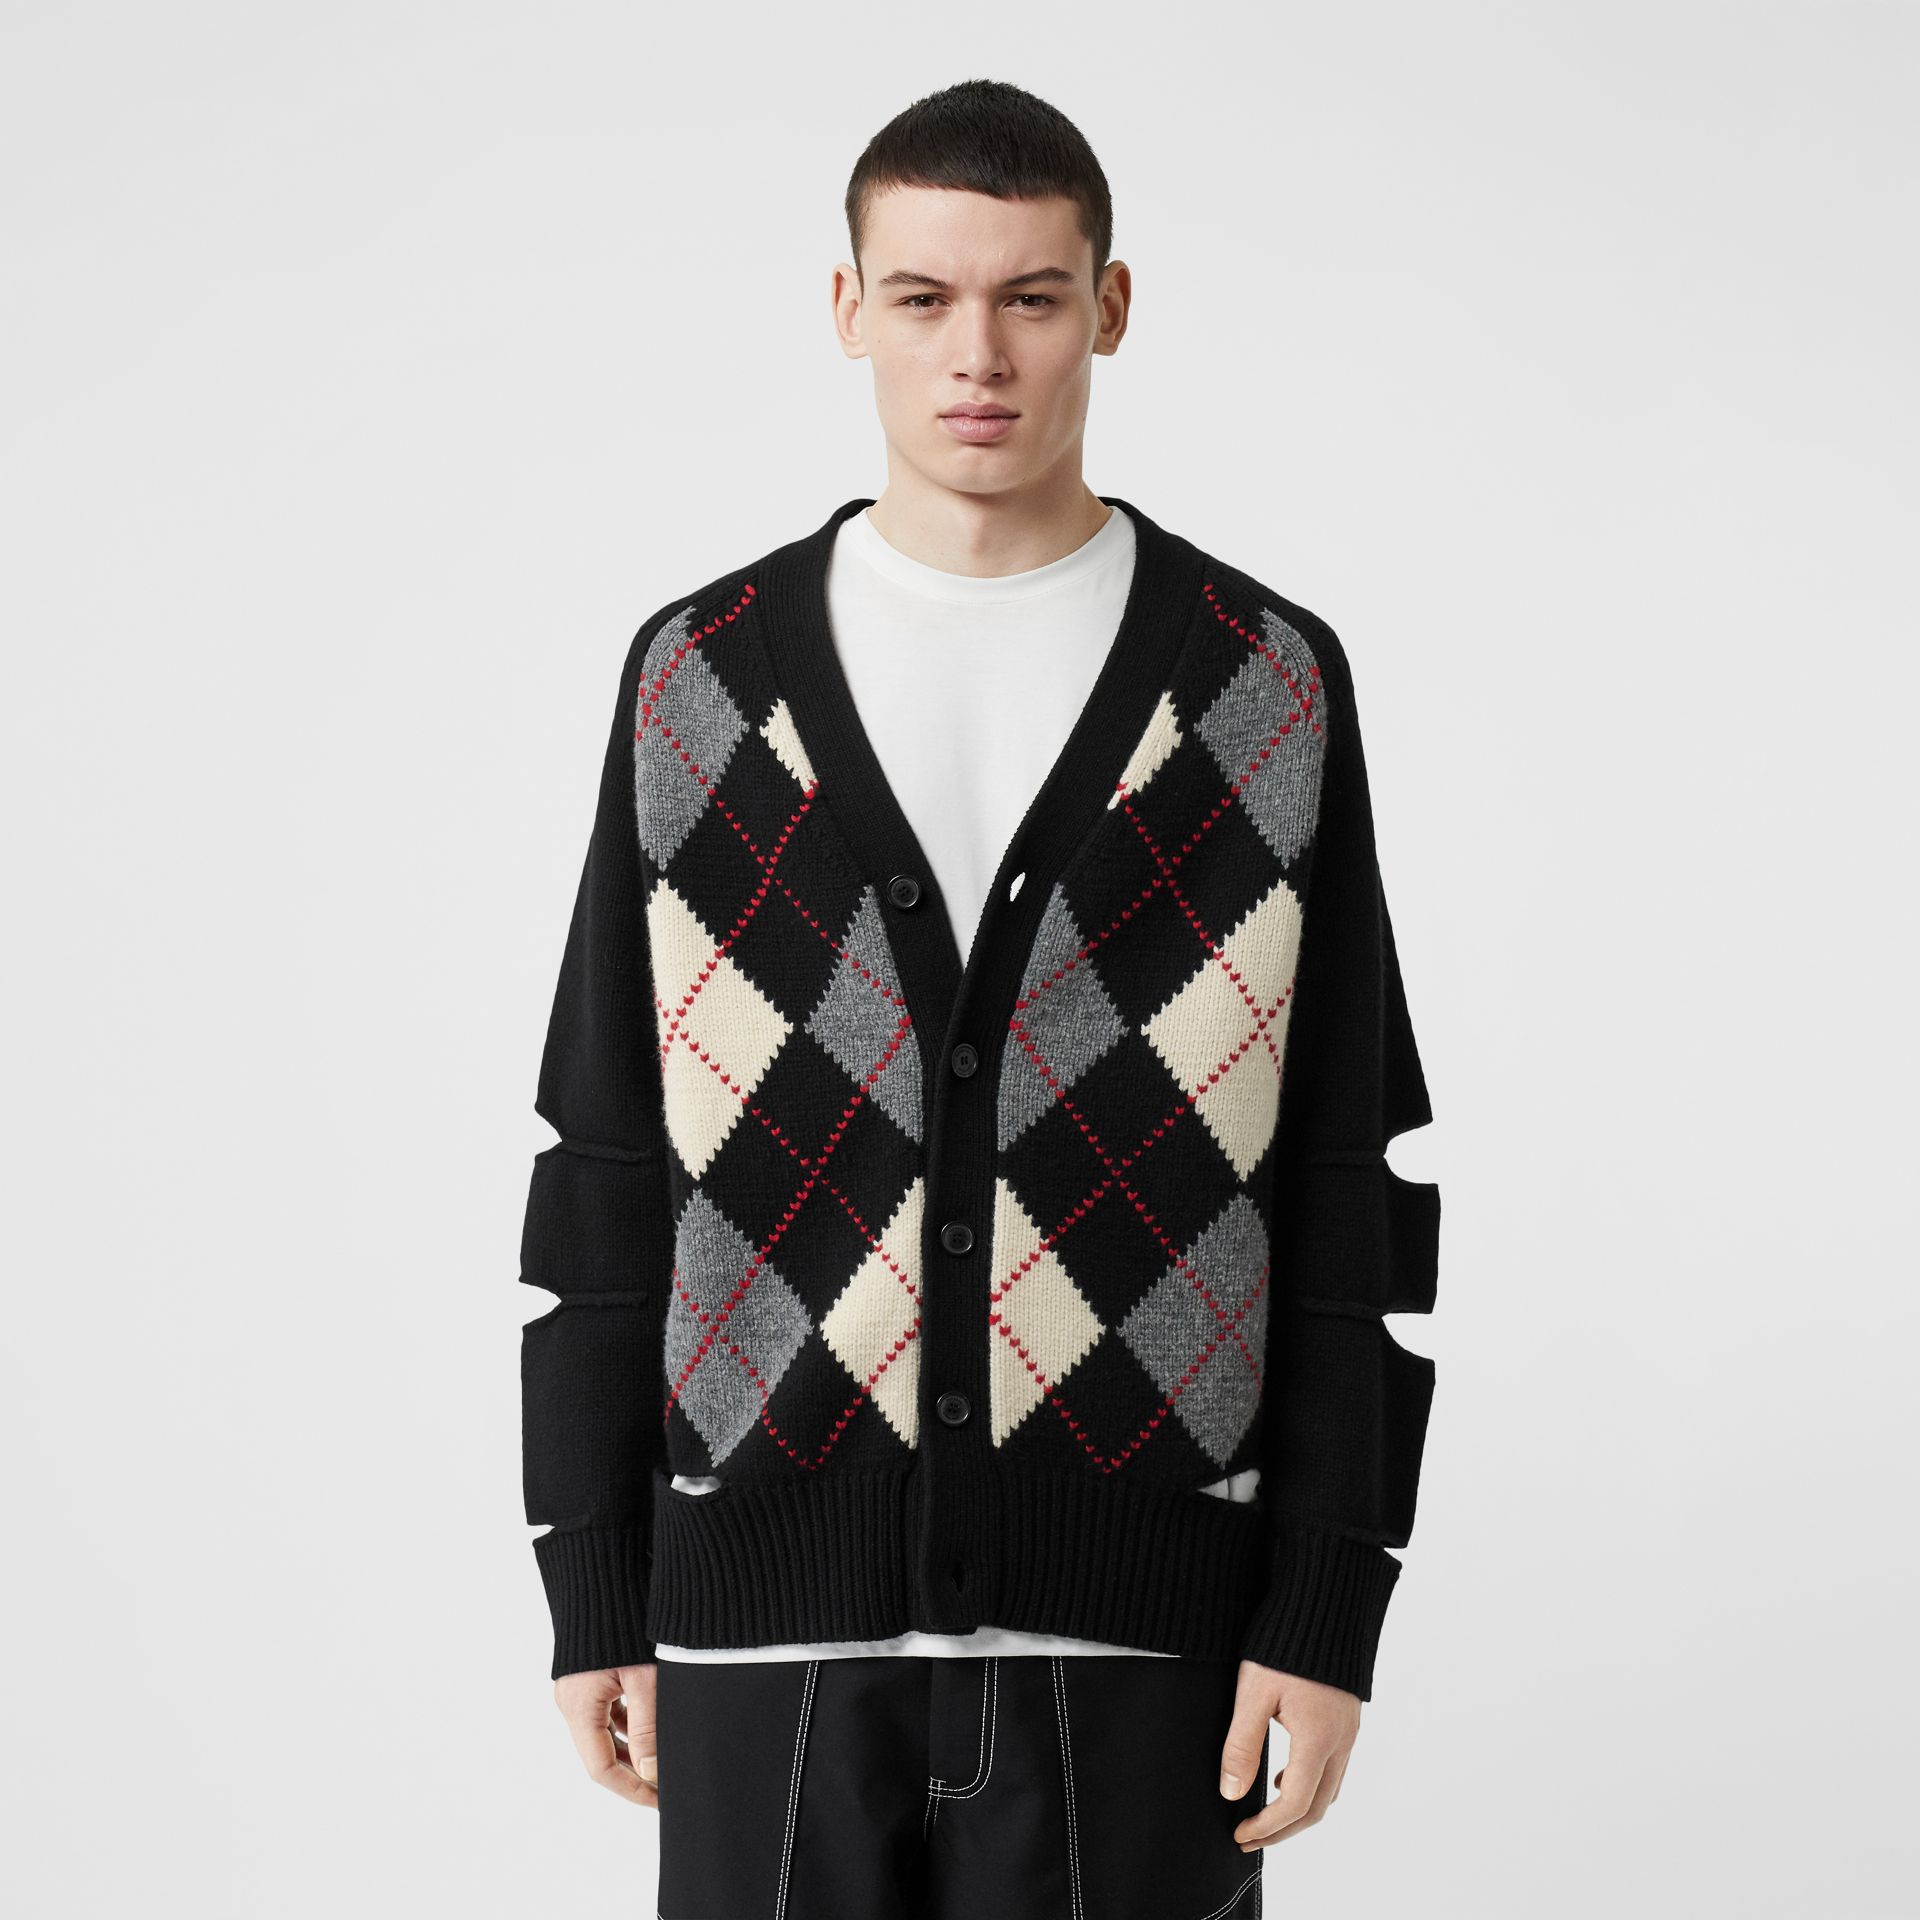 Cut-out Detail Merino Wool Cashmere Cardigan in Black - Men | Burberry Hong Kong S.A.R - gallery image 5